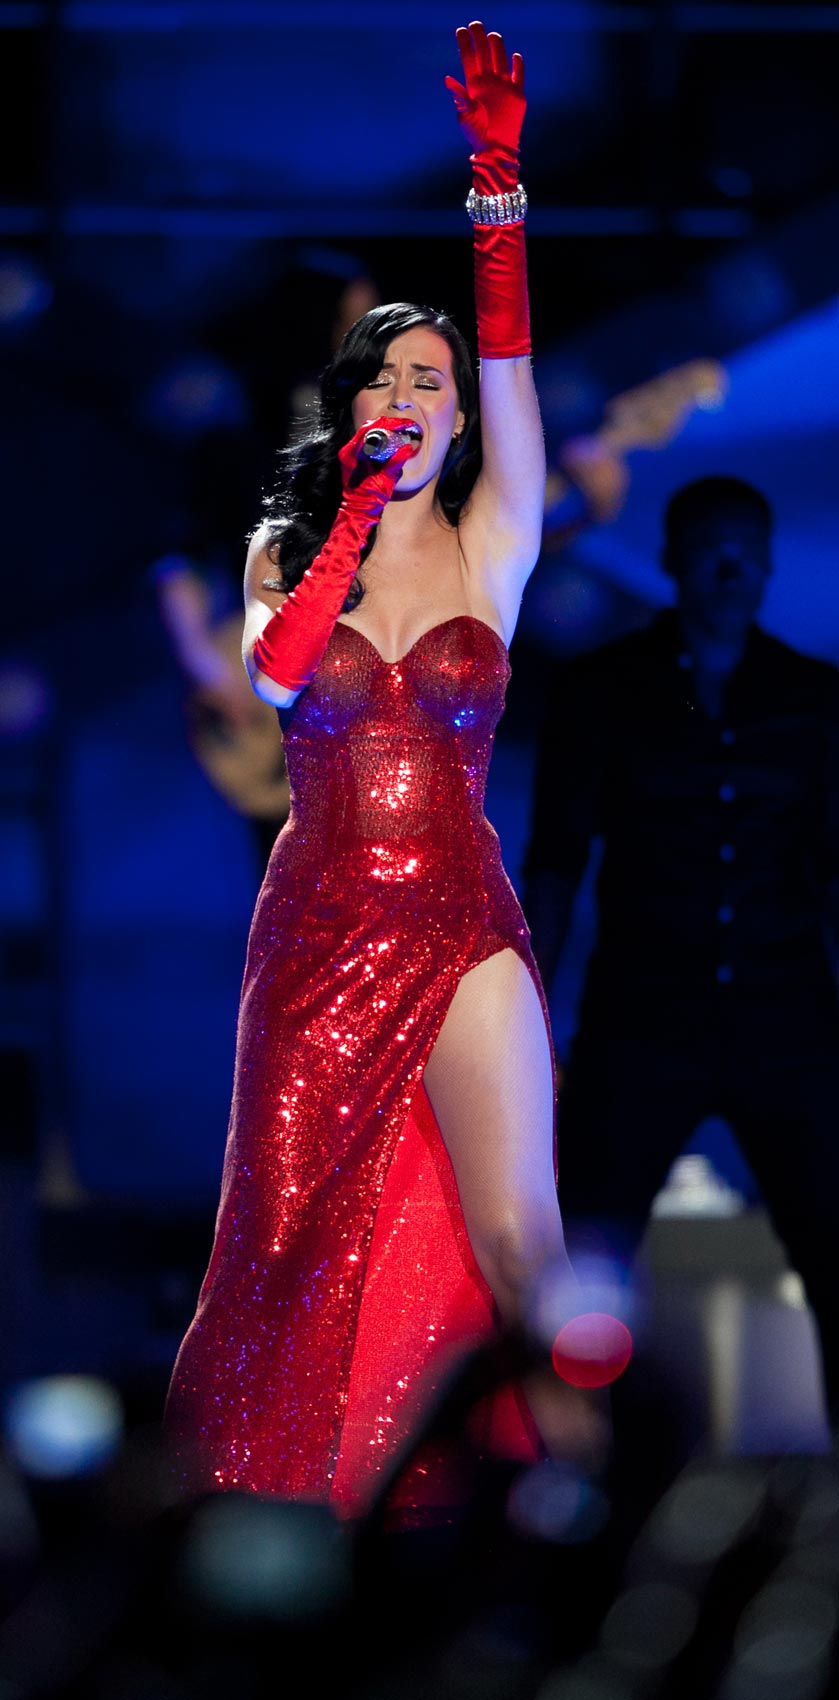 Katy Perry perfoms in USO show